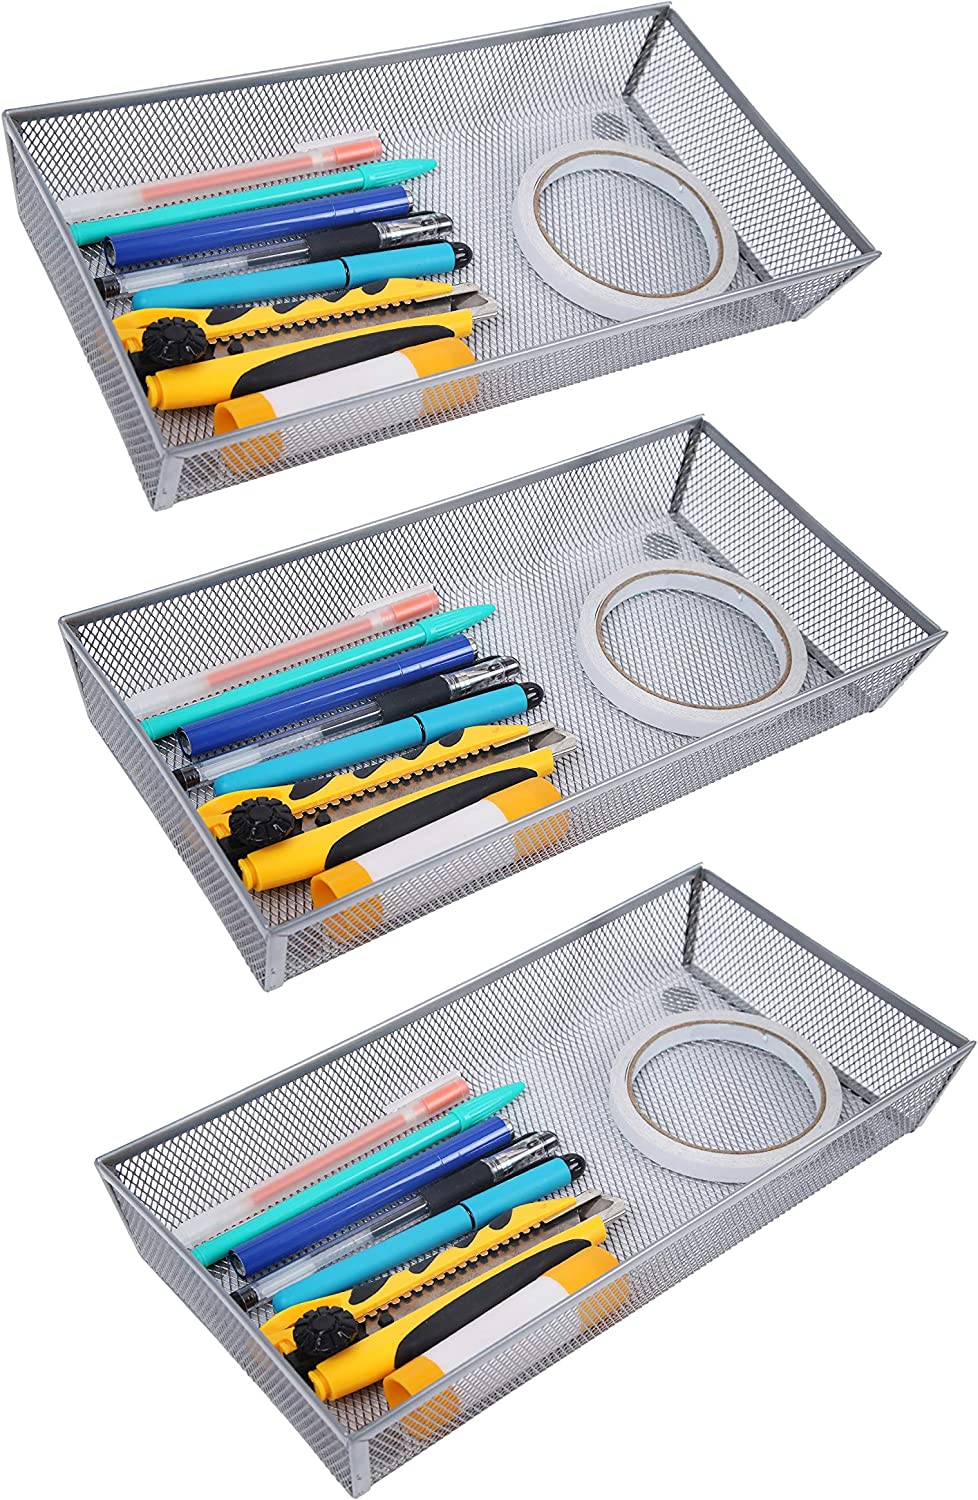 Finnhomy Mesh Drawer Organizer Shelf Storage Bins School Supply Holder Office Desktop Cabinet Sliver 6